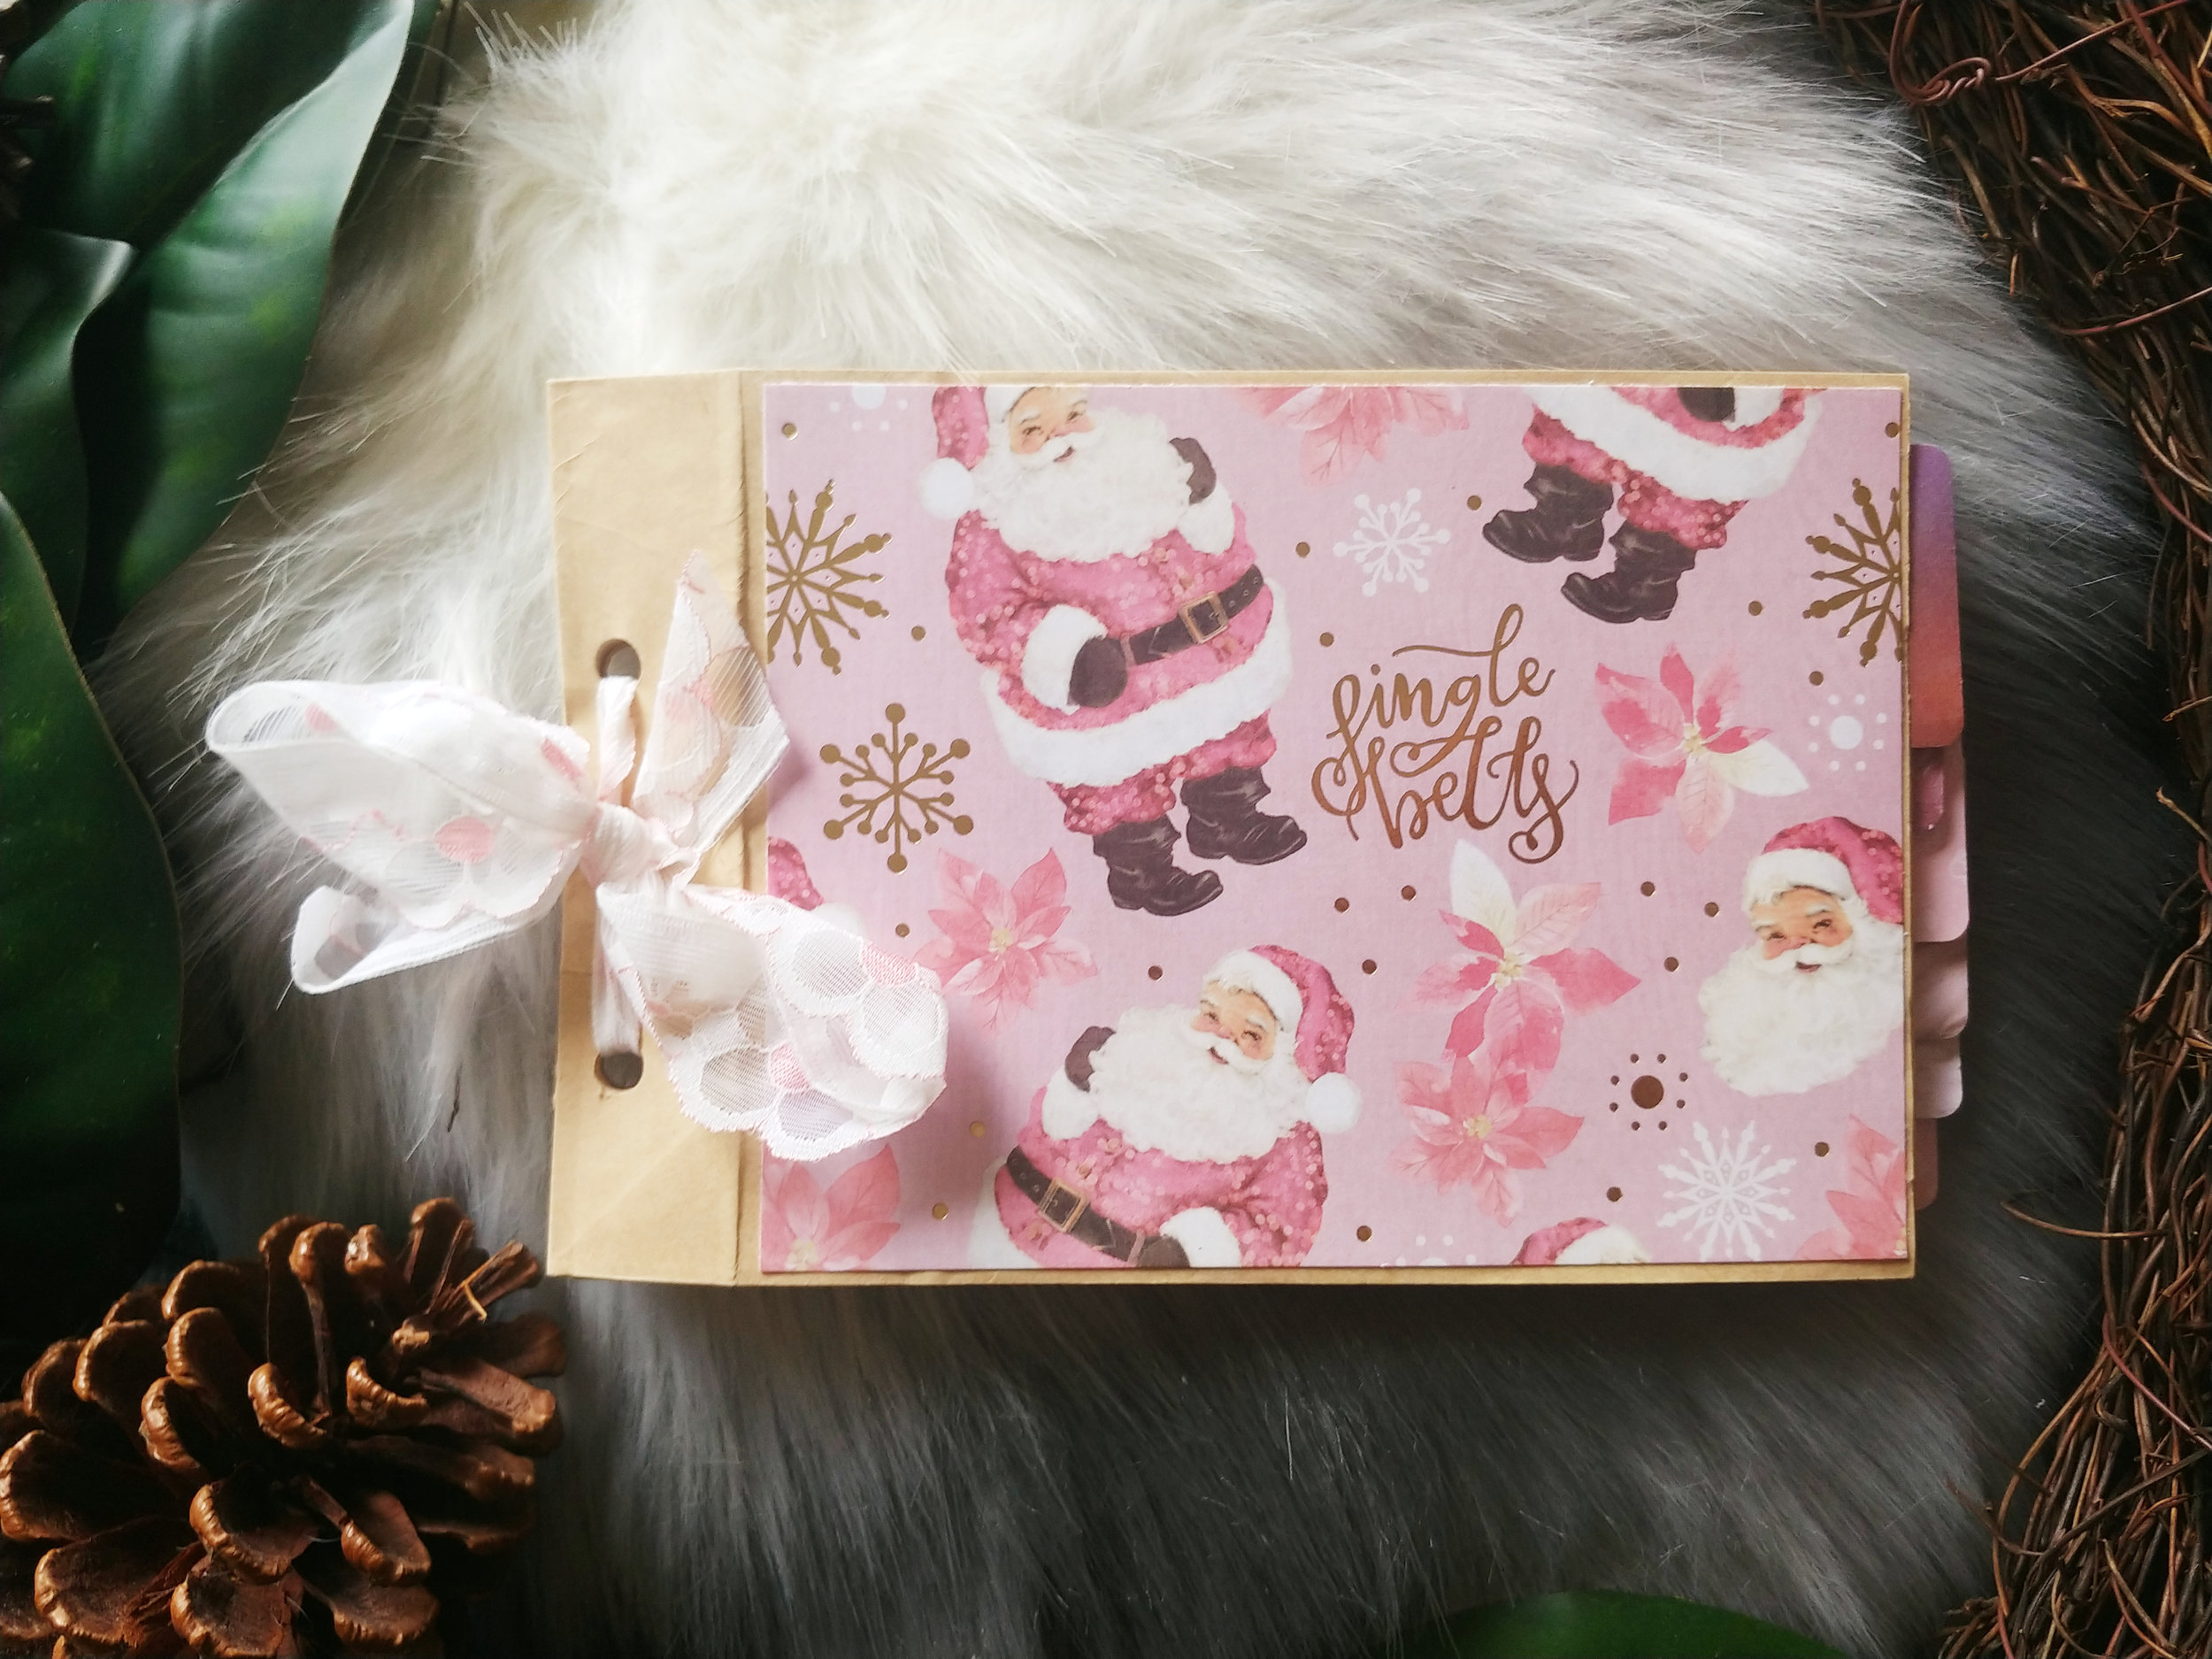 Scrappy Creations by Jenn Christmas Scrapbook